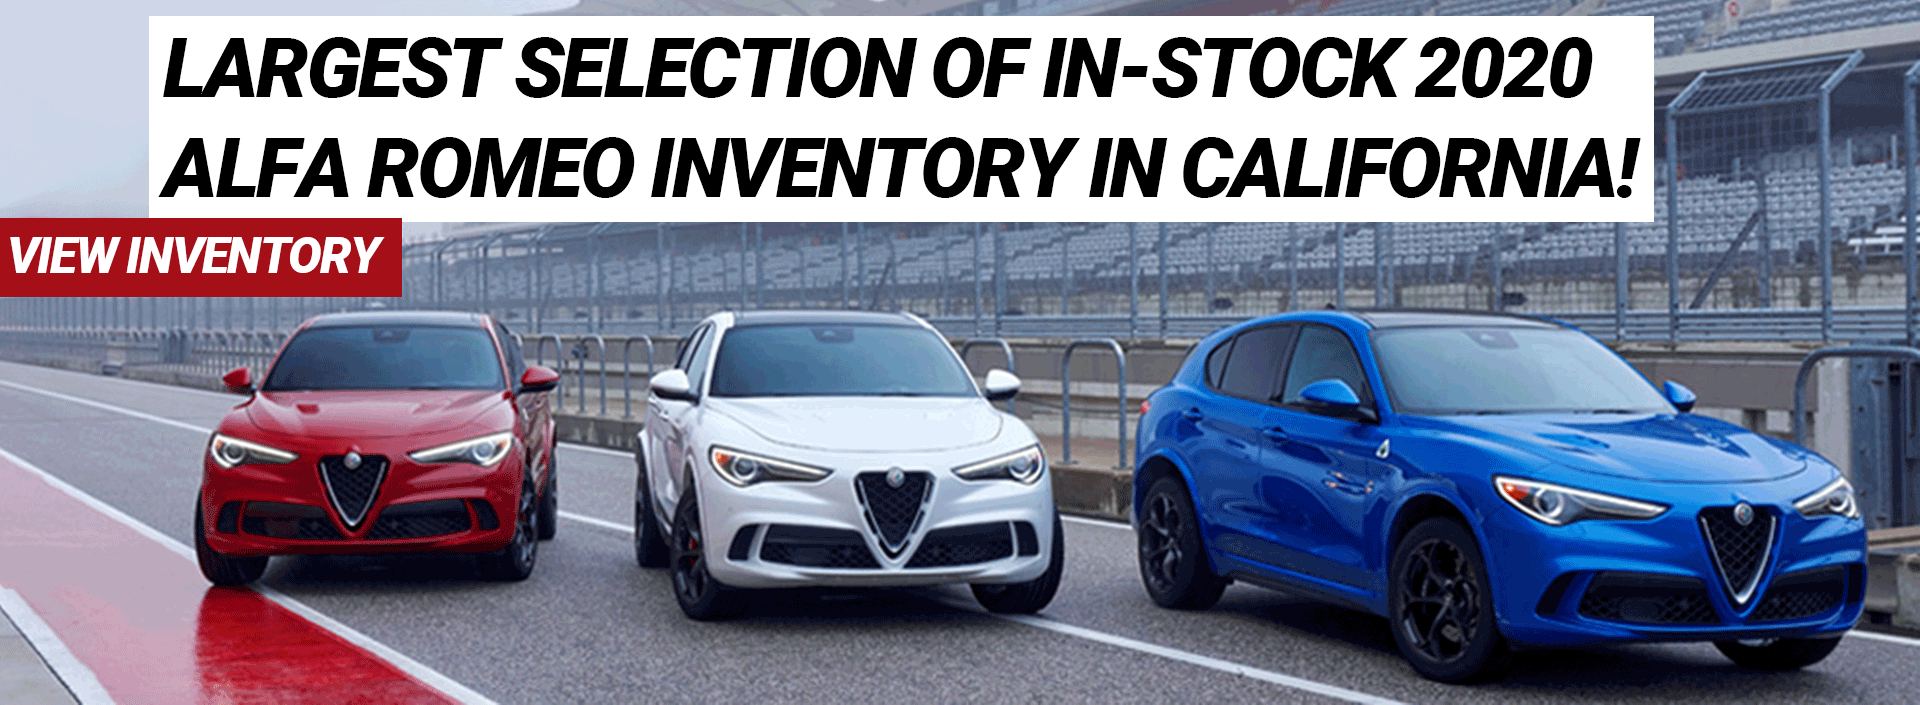 Largest Selection of In-Stock 2020 Alfa Romeo Inventory in California